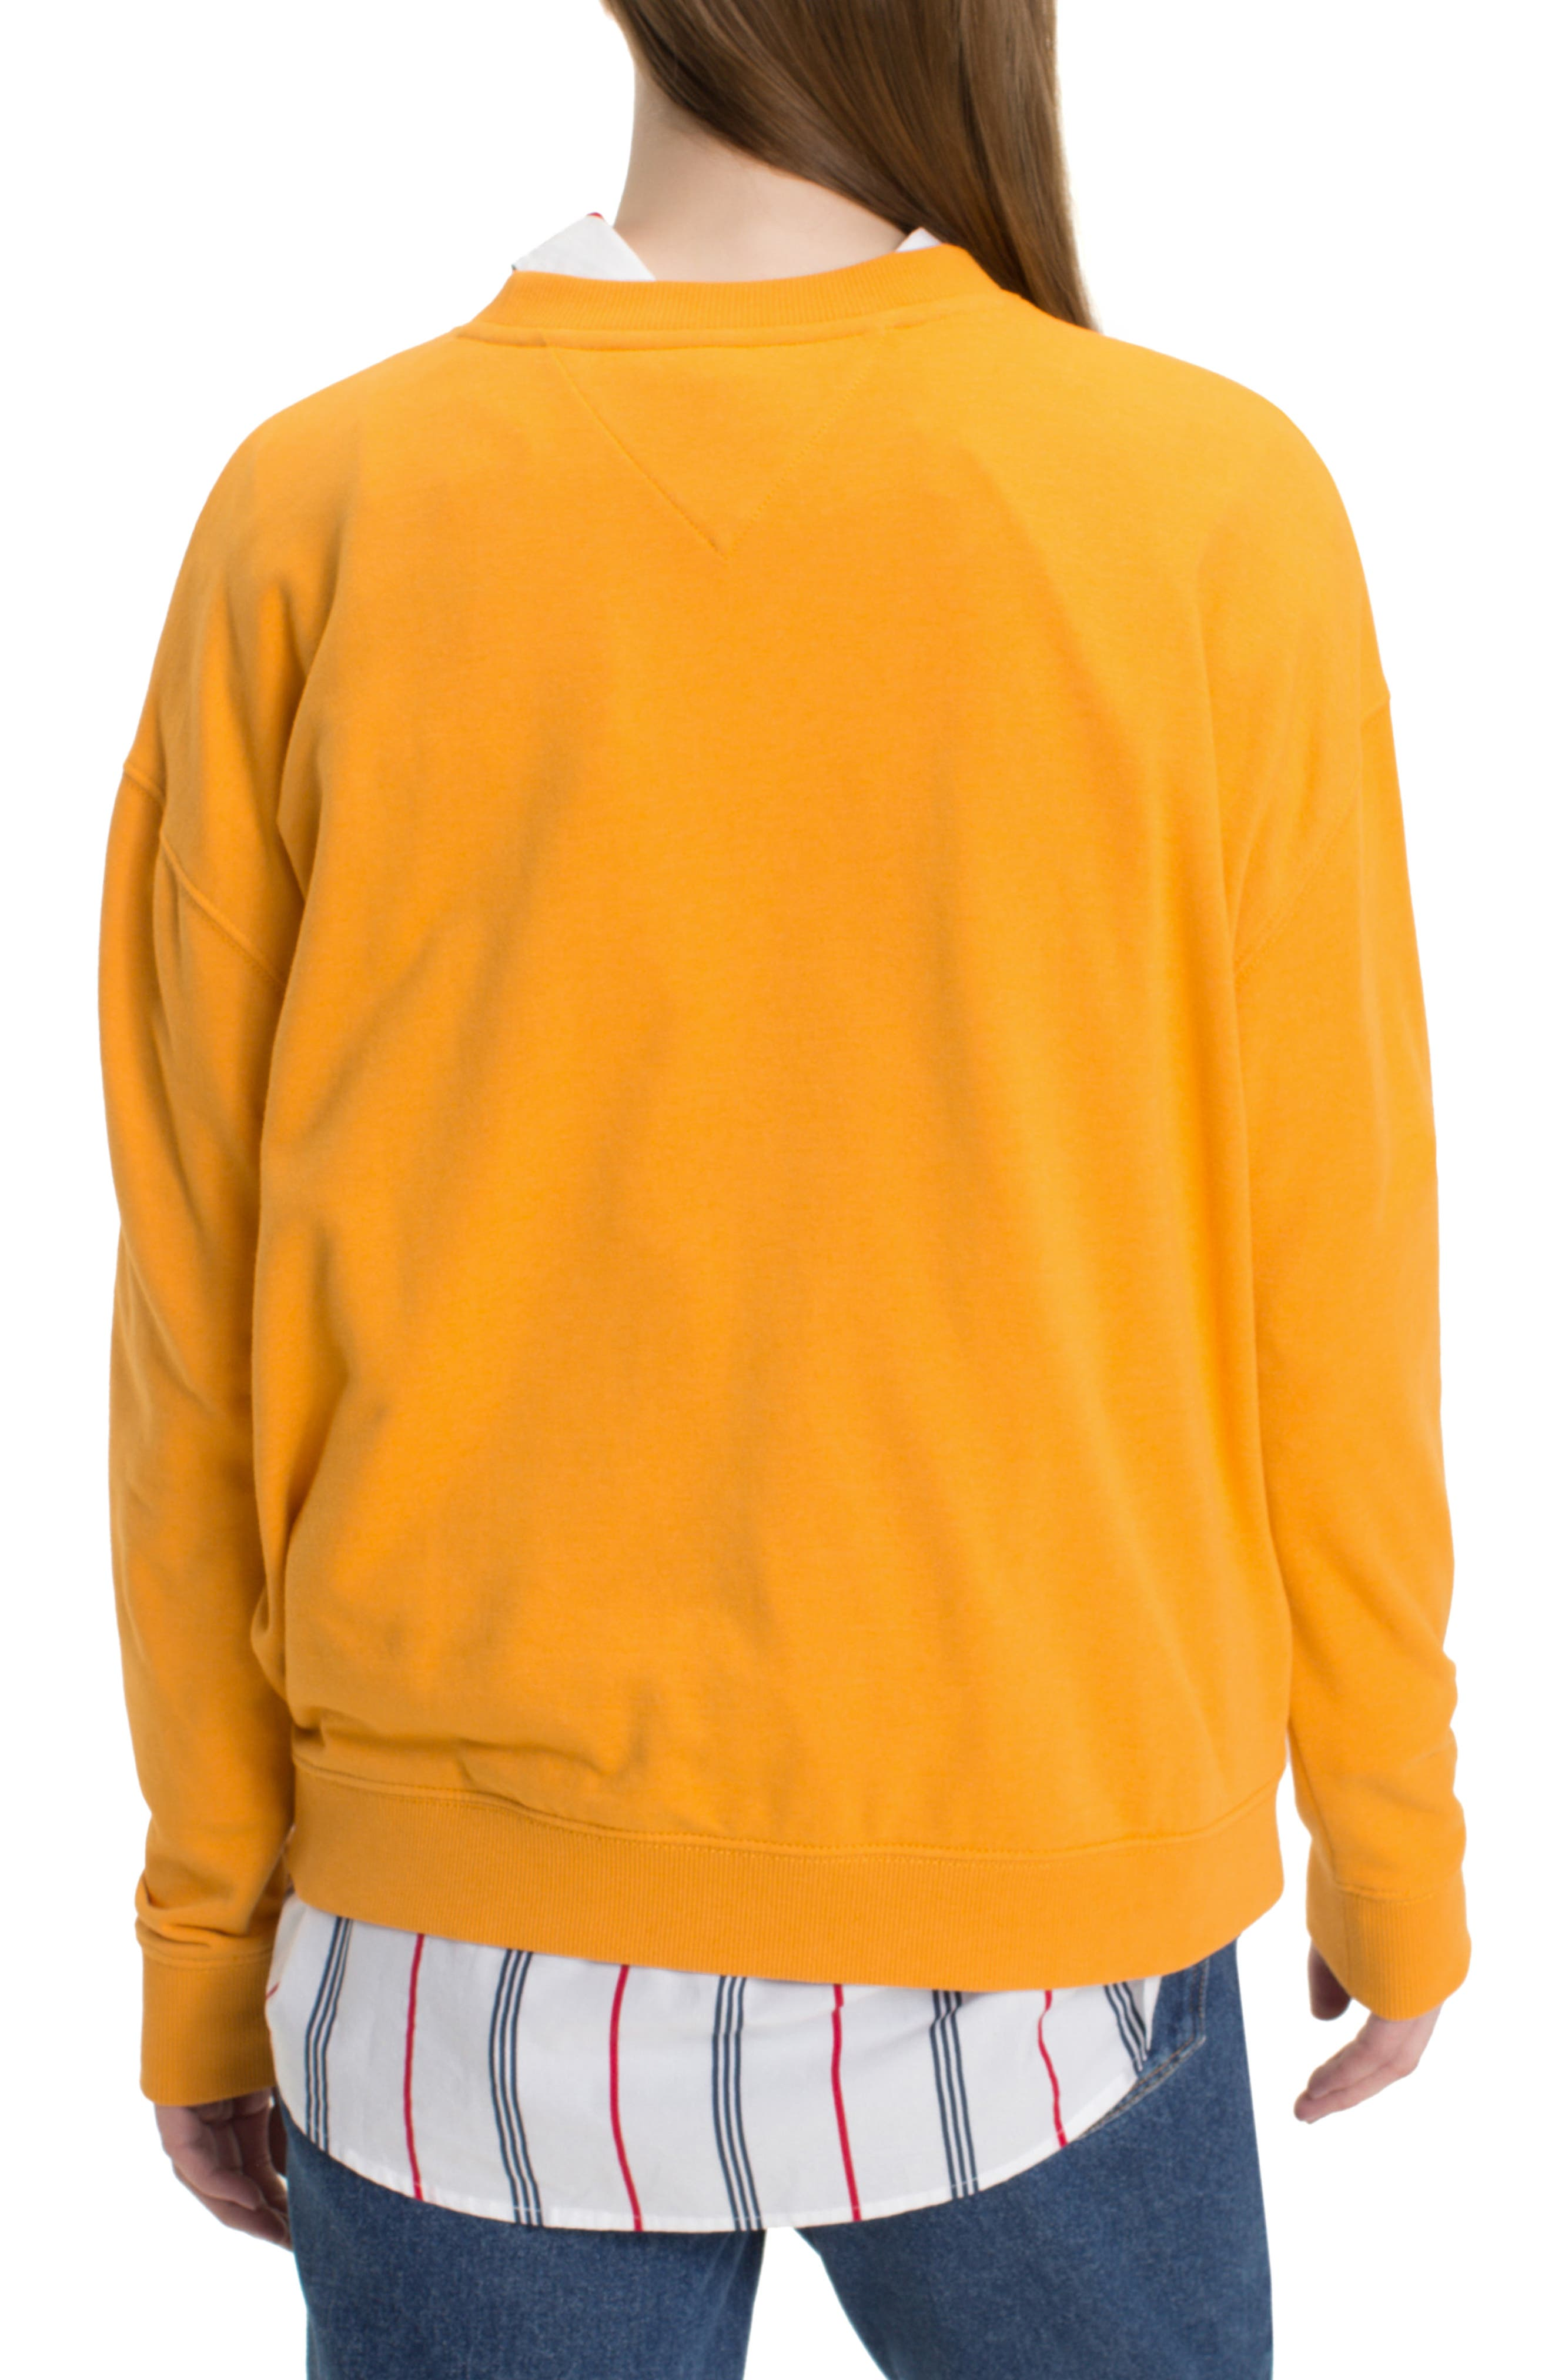 TJW Have A Nice Day Sweatshirt,                             Alternate thumbnail 2, color,                             BUTTERSCOTCH